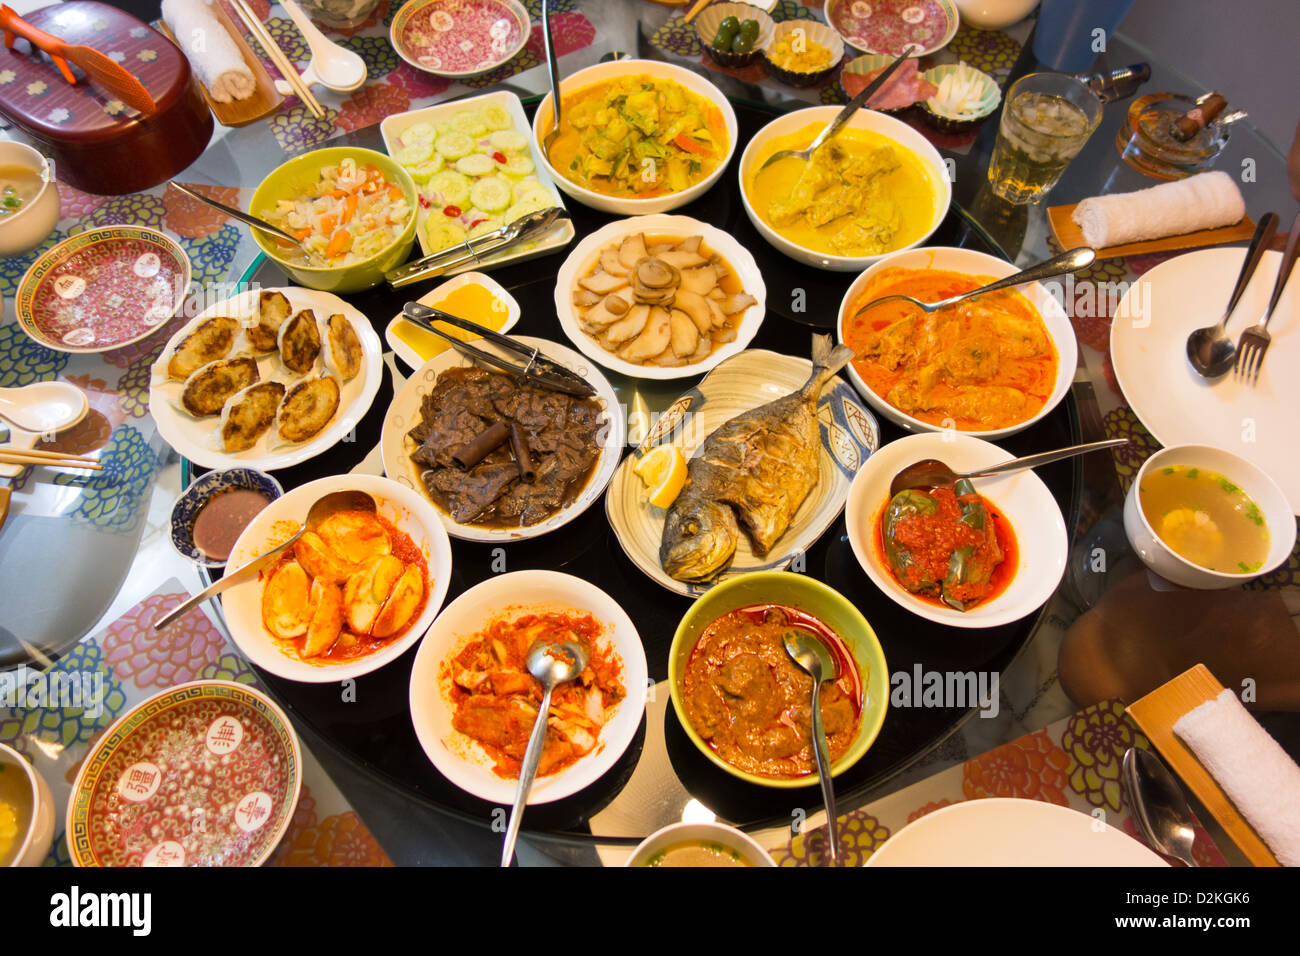 Feast of Asian Food Stock Photo